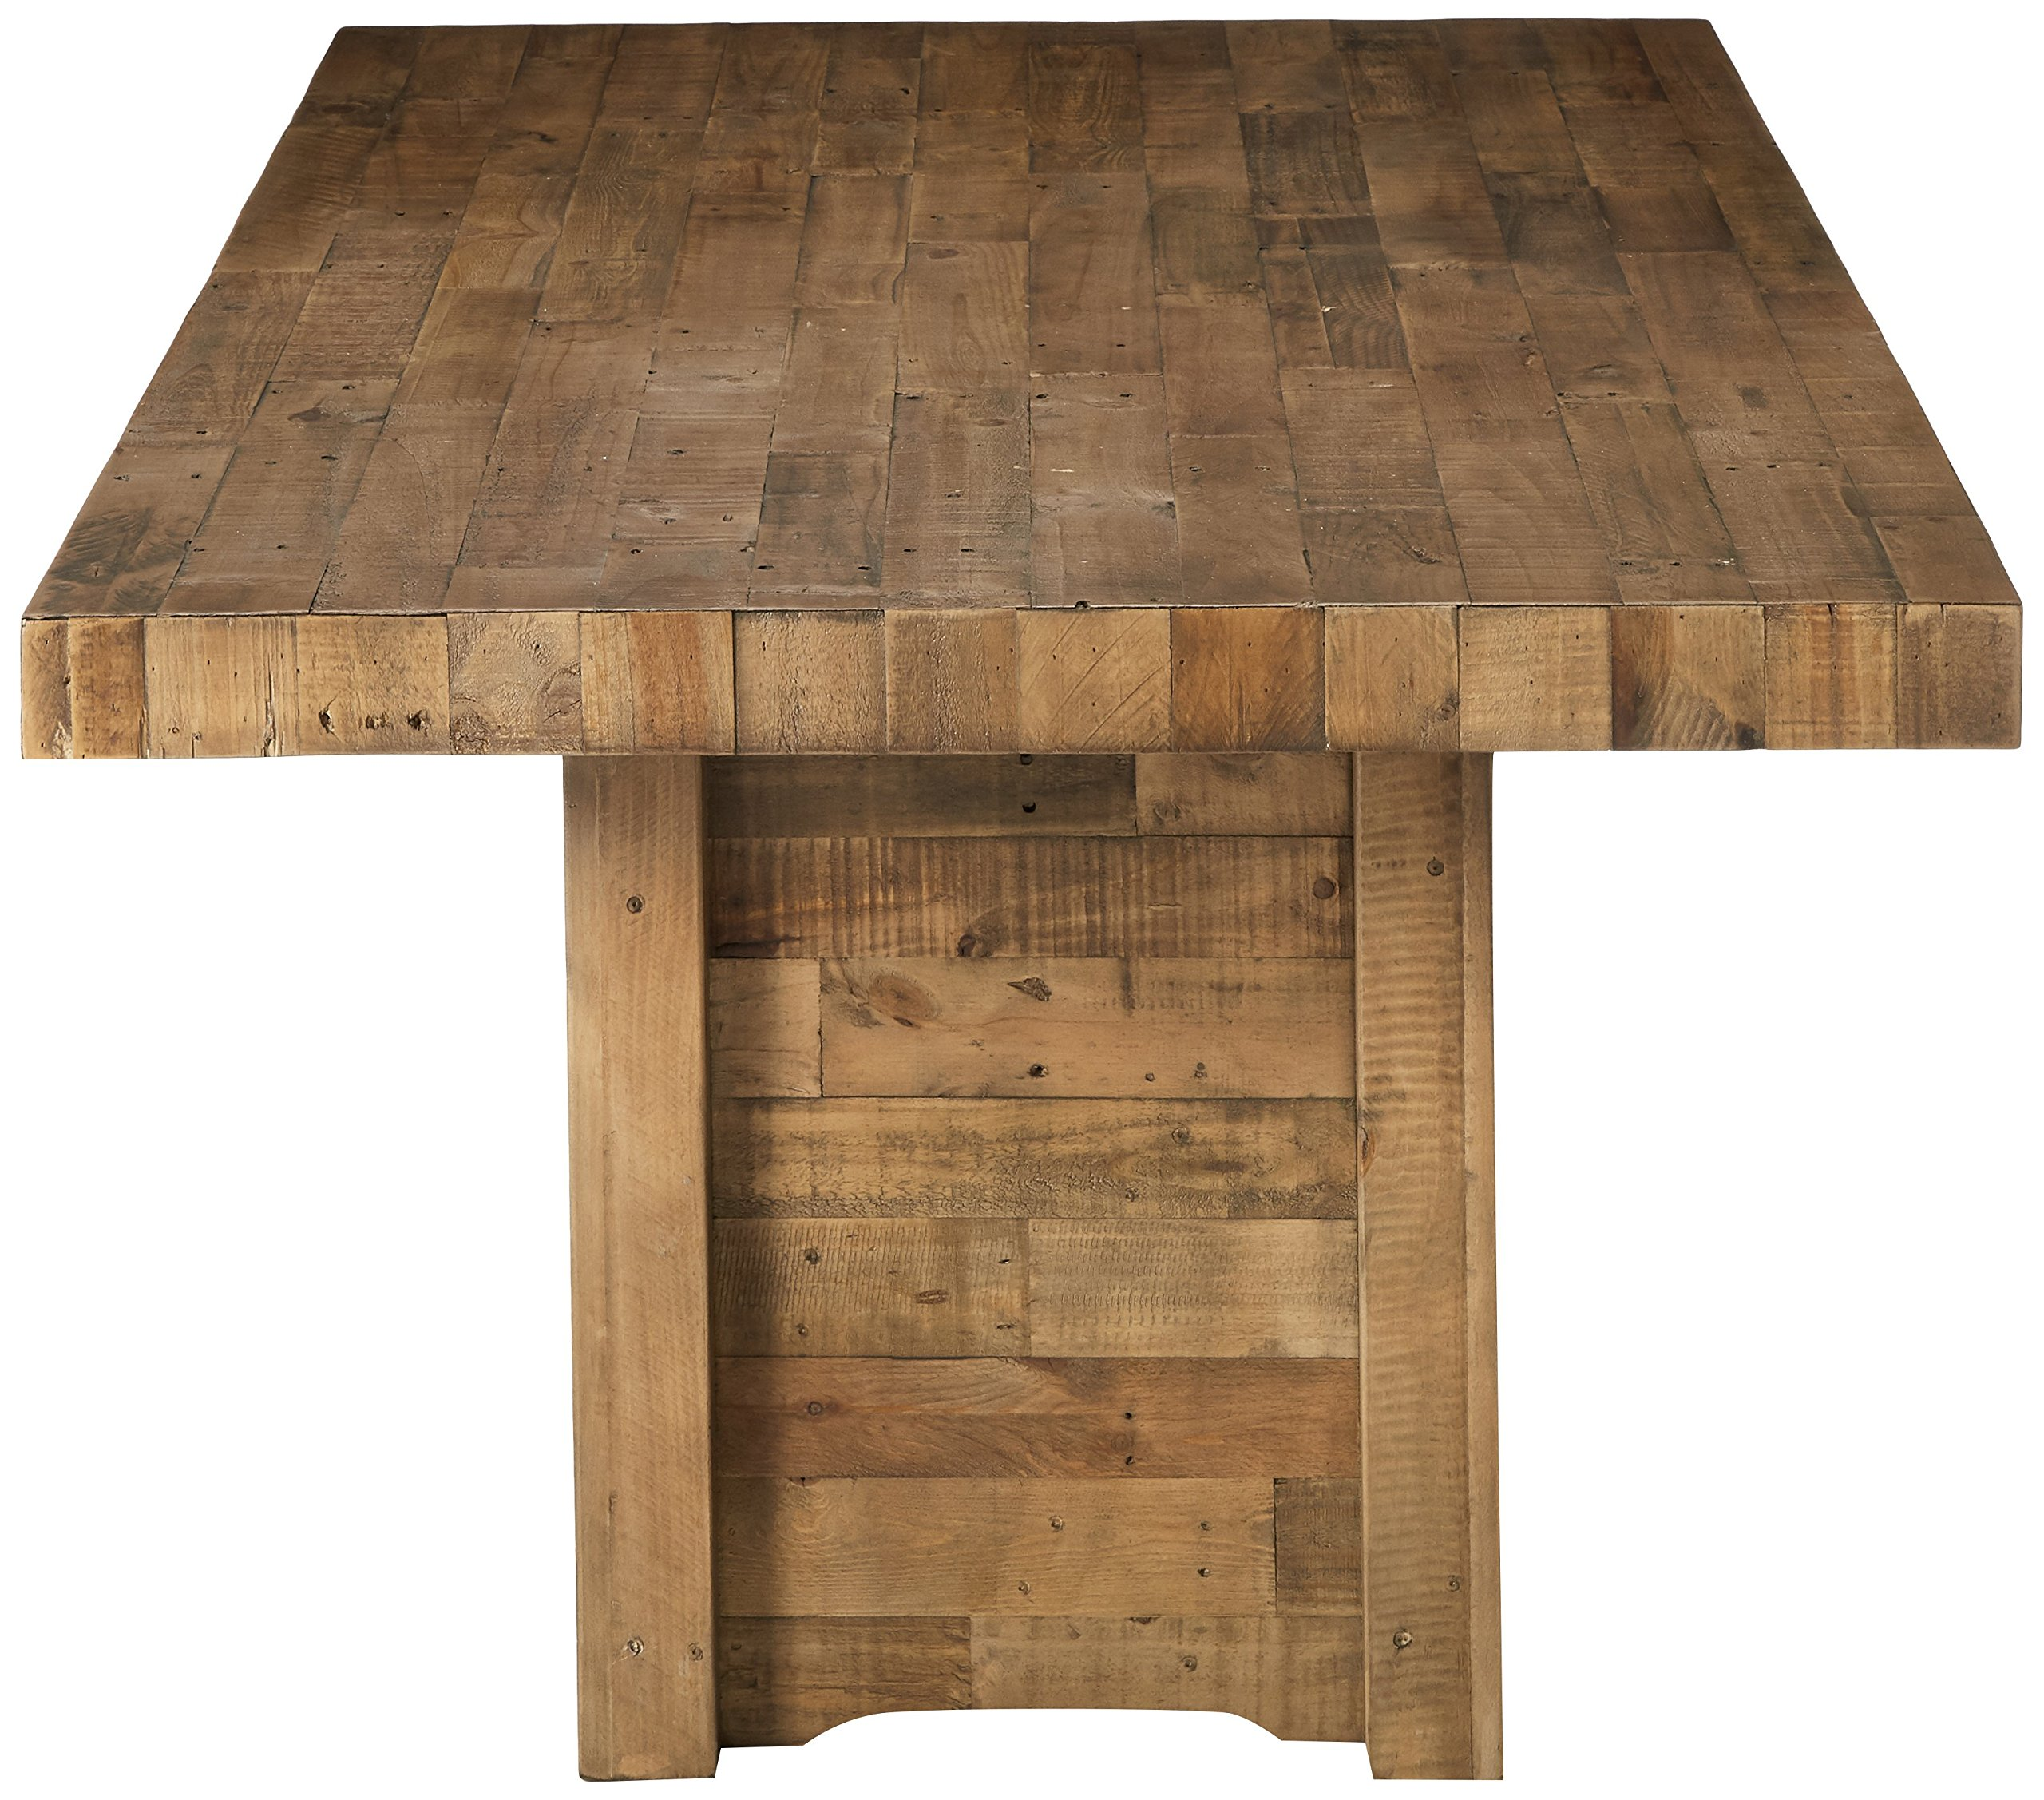 Signature Design by Ashley D775-25 Sommerford Dining Table, Summerford by Signature Design by Ashley (Image #3)